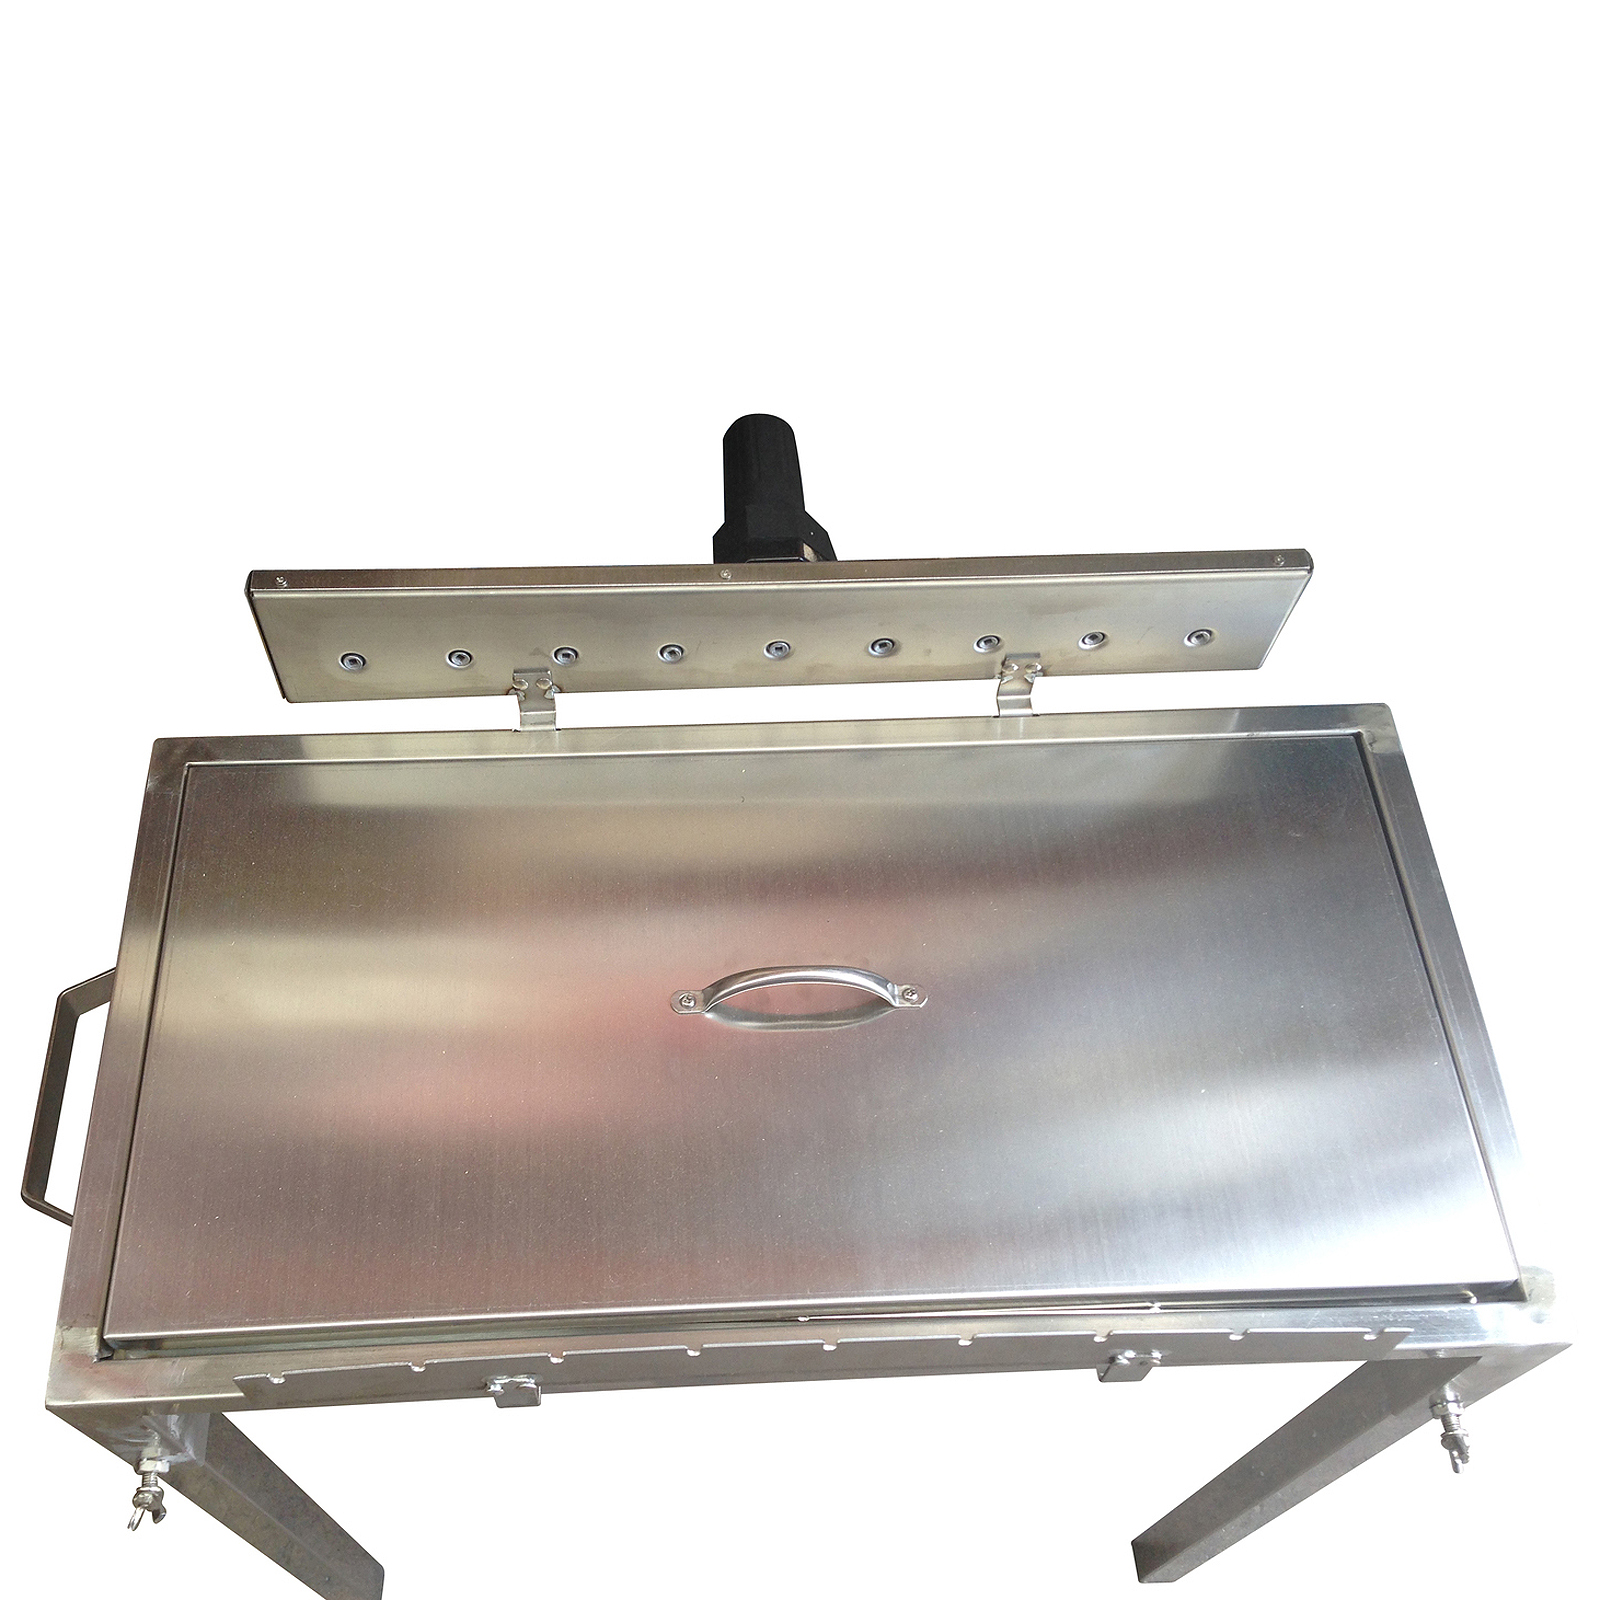 New stainless steel rotisserie skewer charcoal bbq with